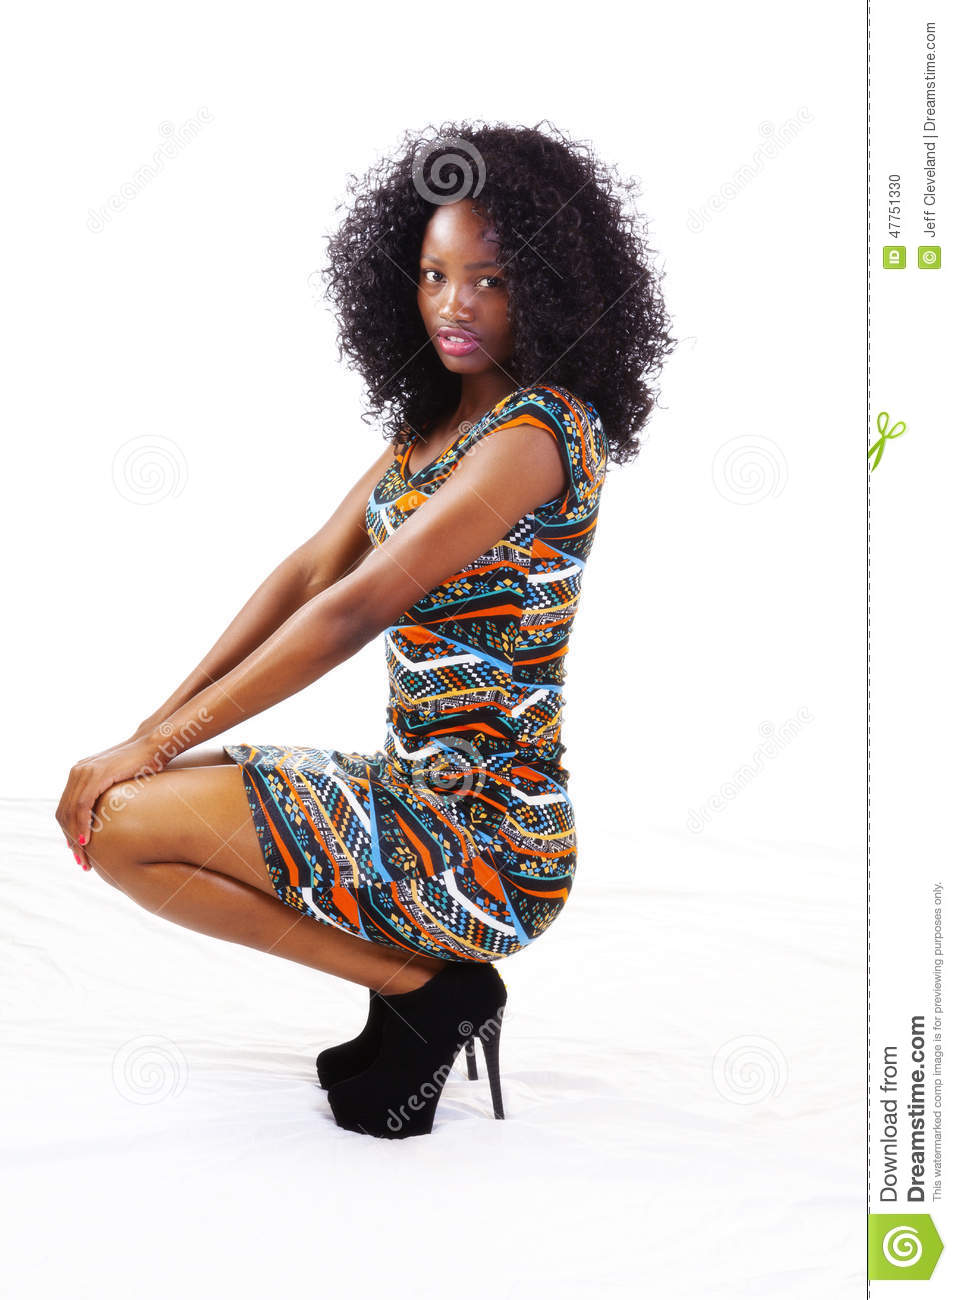 African American Teen Girl Squatting In Dress Stock Photo - Image 47751330-5663